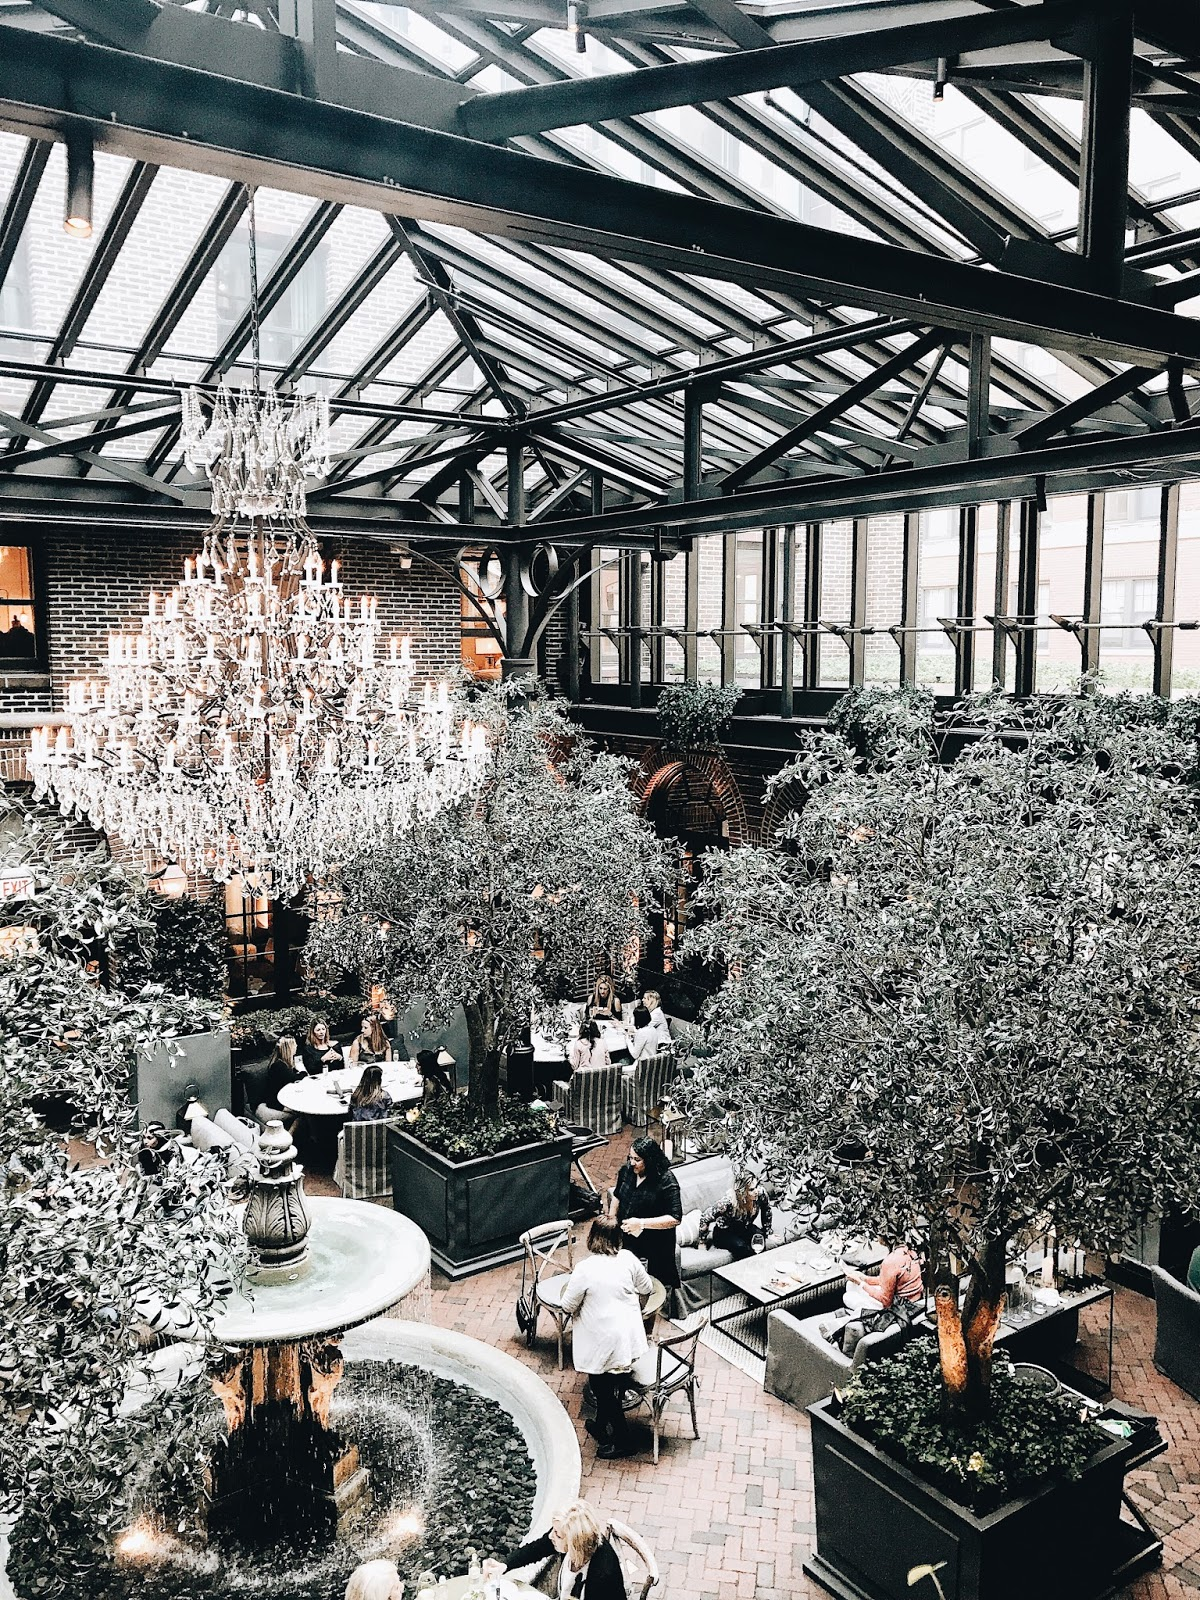 Top 3 Aesthetic Spaces in Chicago